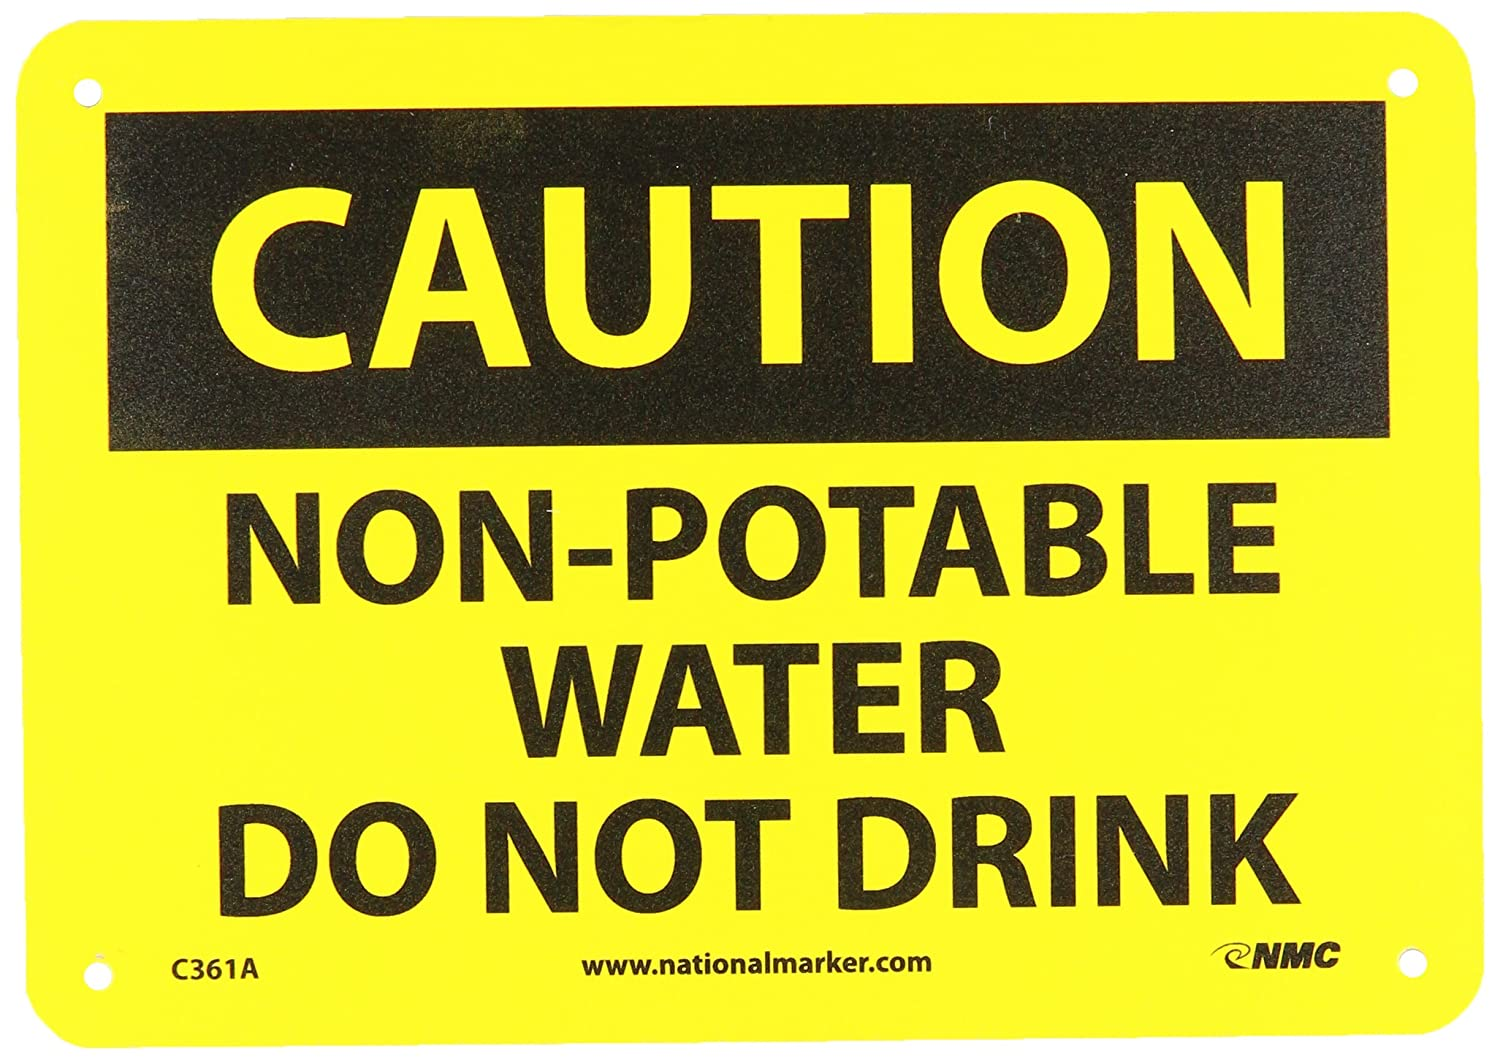 NMC C361P OSHA Sign, Legend CAUTION - NON POTABLE WATER DO NOT DRINK, 10 Length x 7 Height, Pressure Sensitive Adhesive Vinyl, Black on Yellow NMCC361P